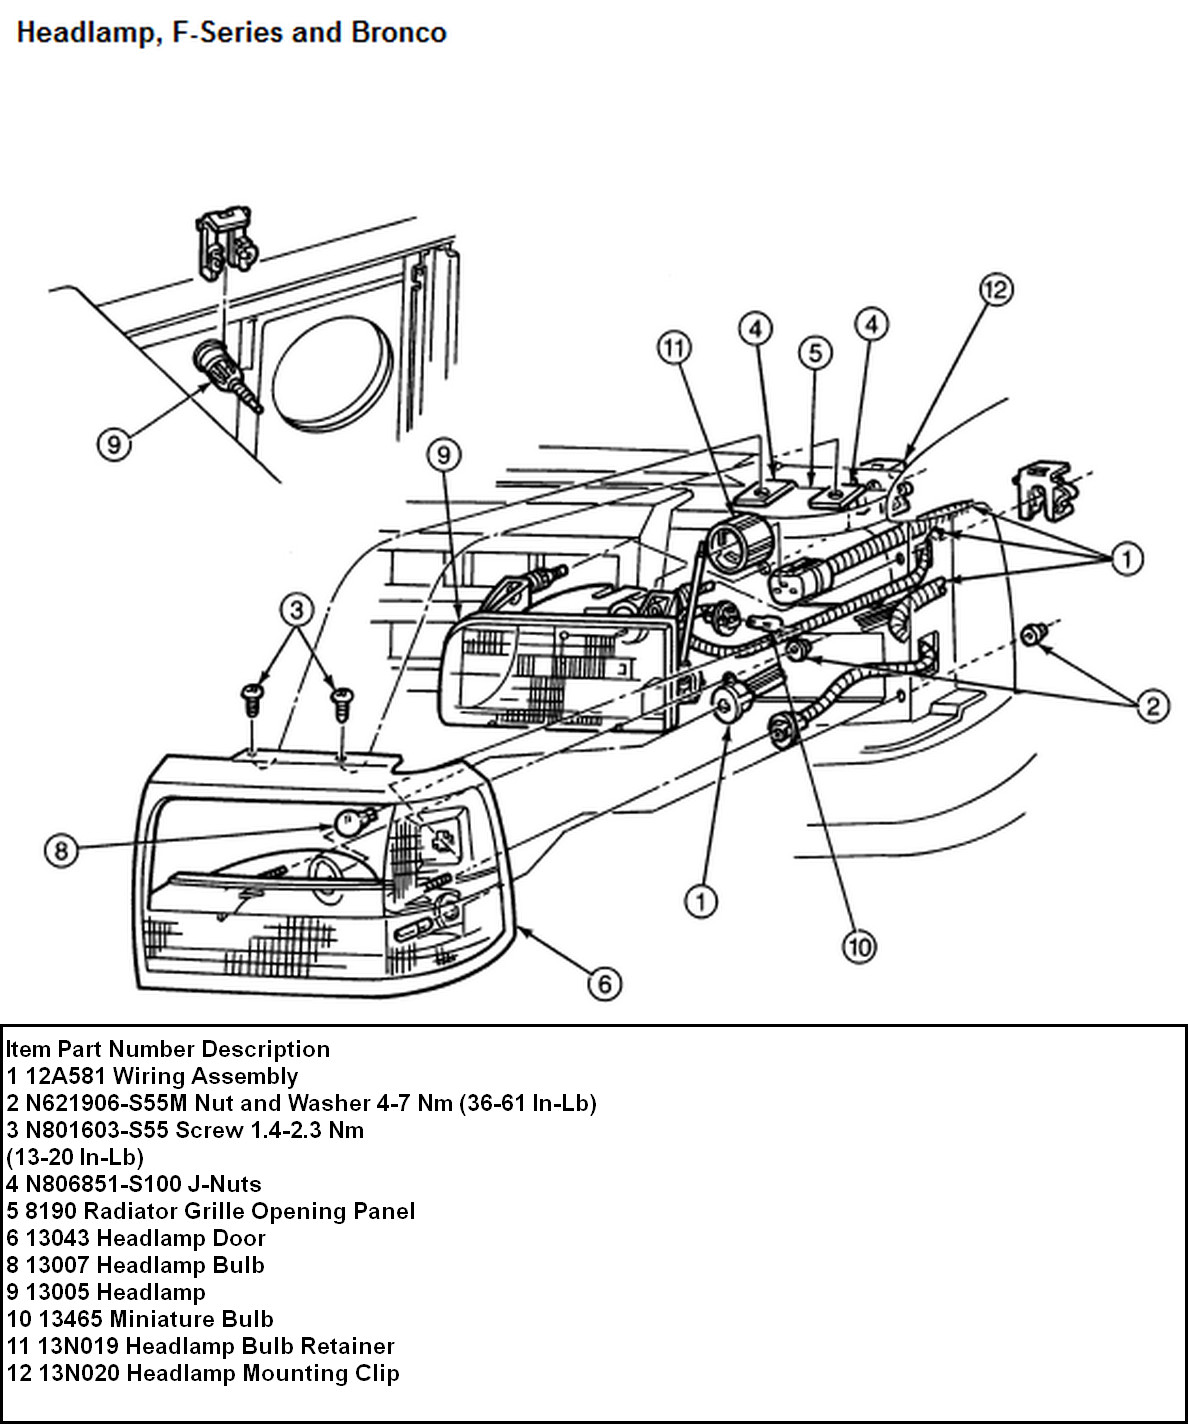 94 ford f150 need to change the headlight out assembly 84 Ford F 150 Wiring Diagram Ford F-150 Wiring Diagram